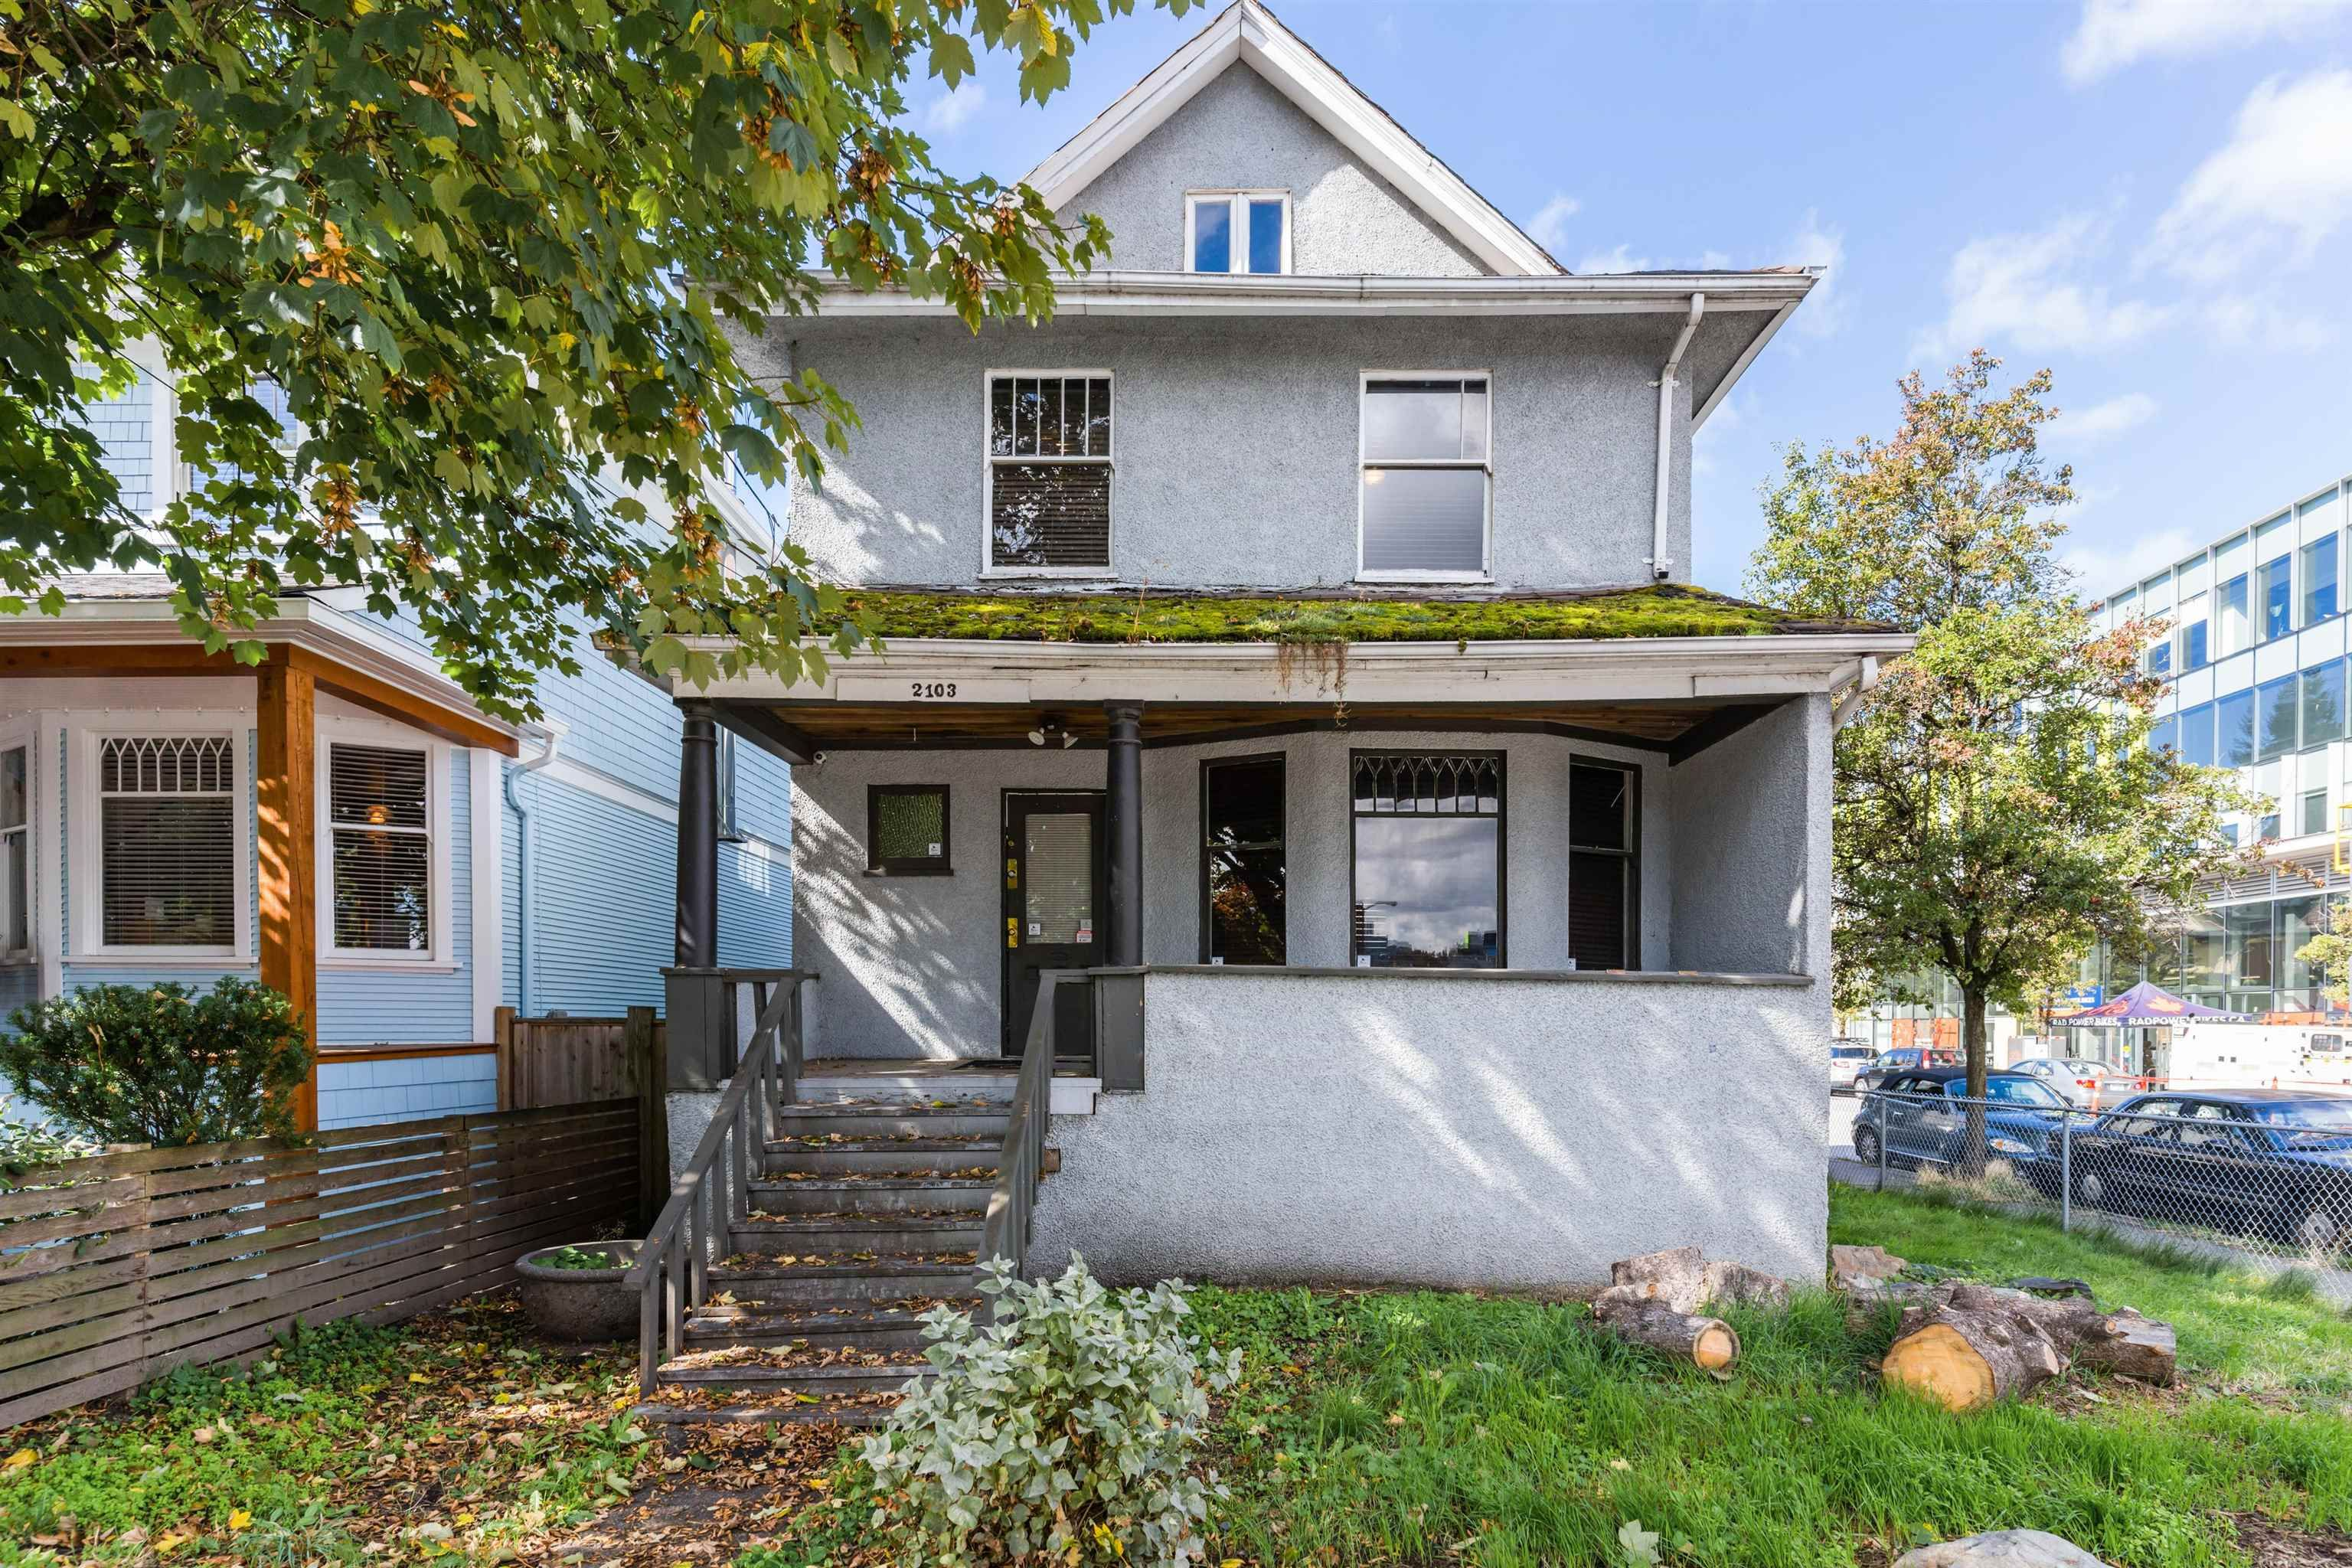 Main Photo: 2103 COLUMBIA Street in Vancouver: False Creek House for sale (Vancouver West)  : MLS®# R2617685